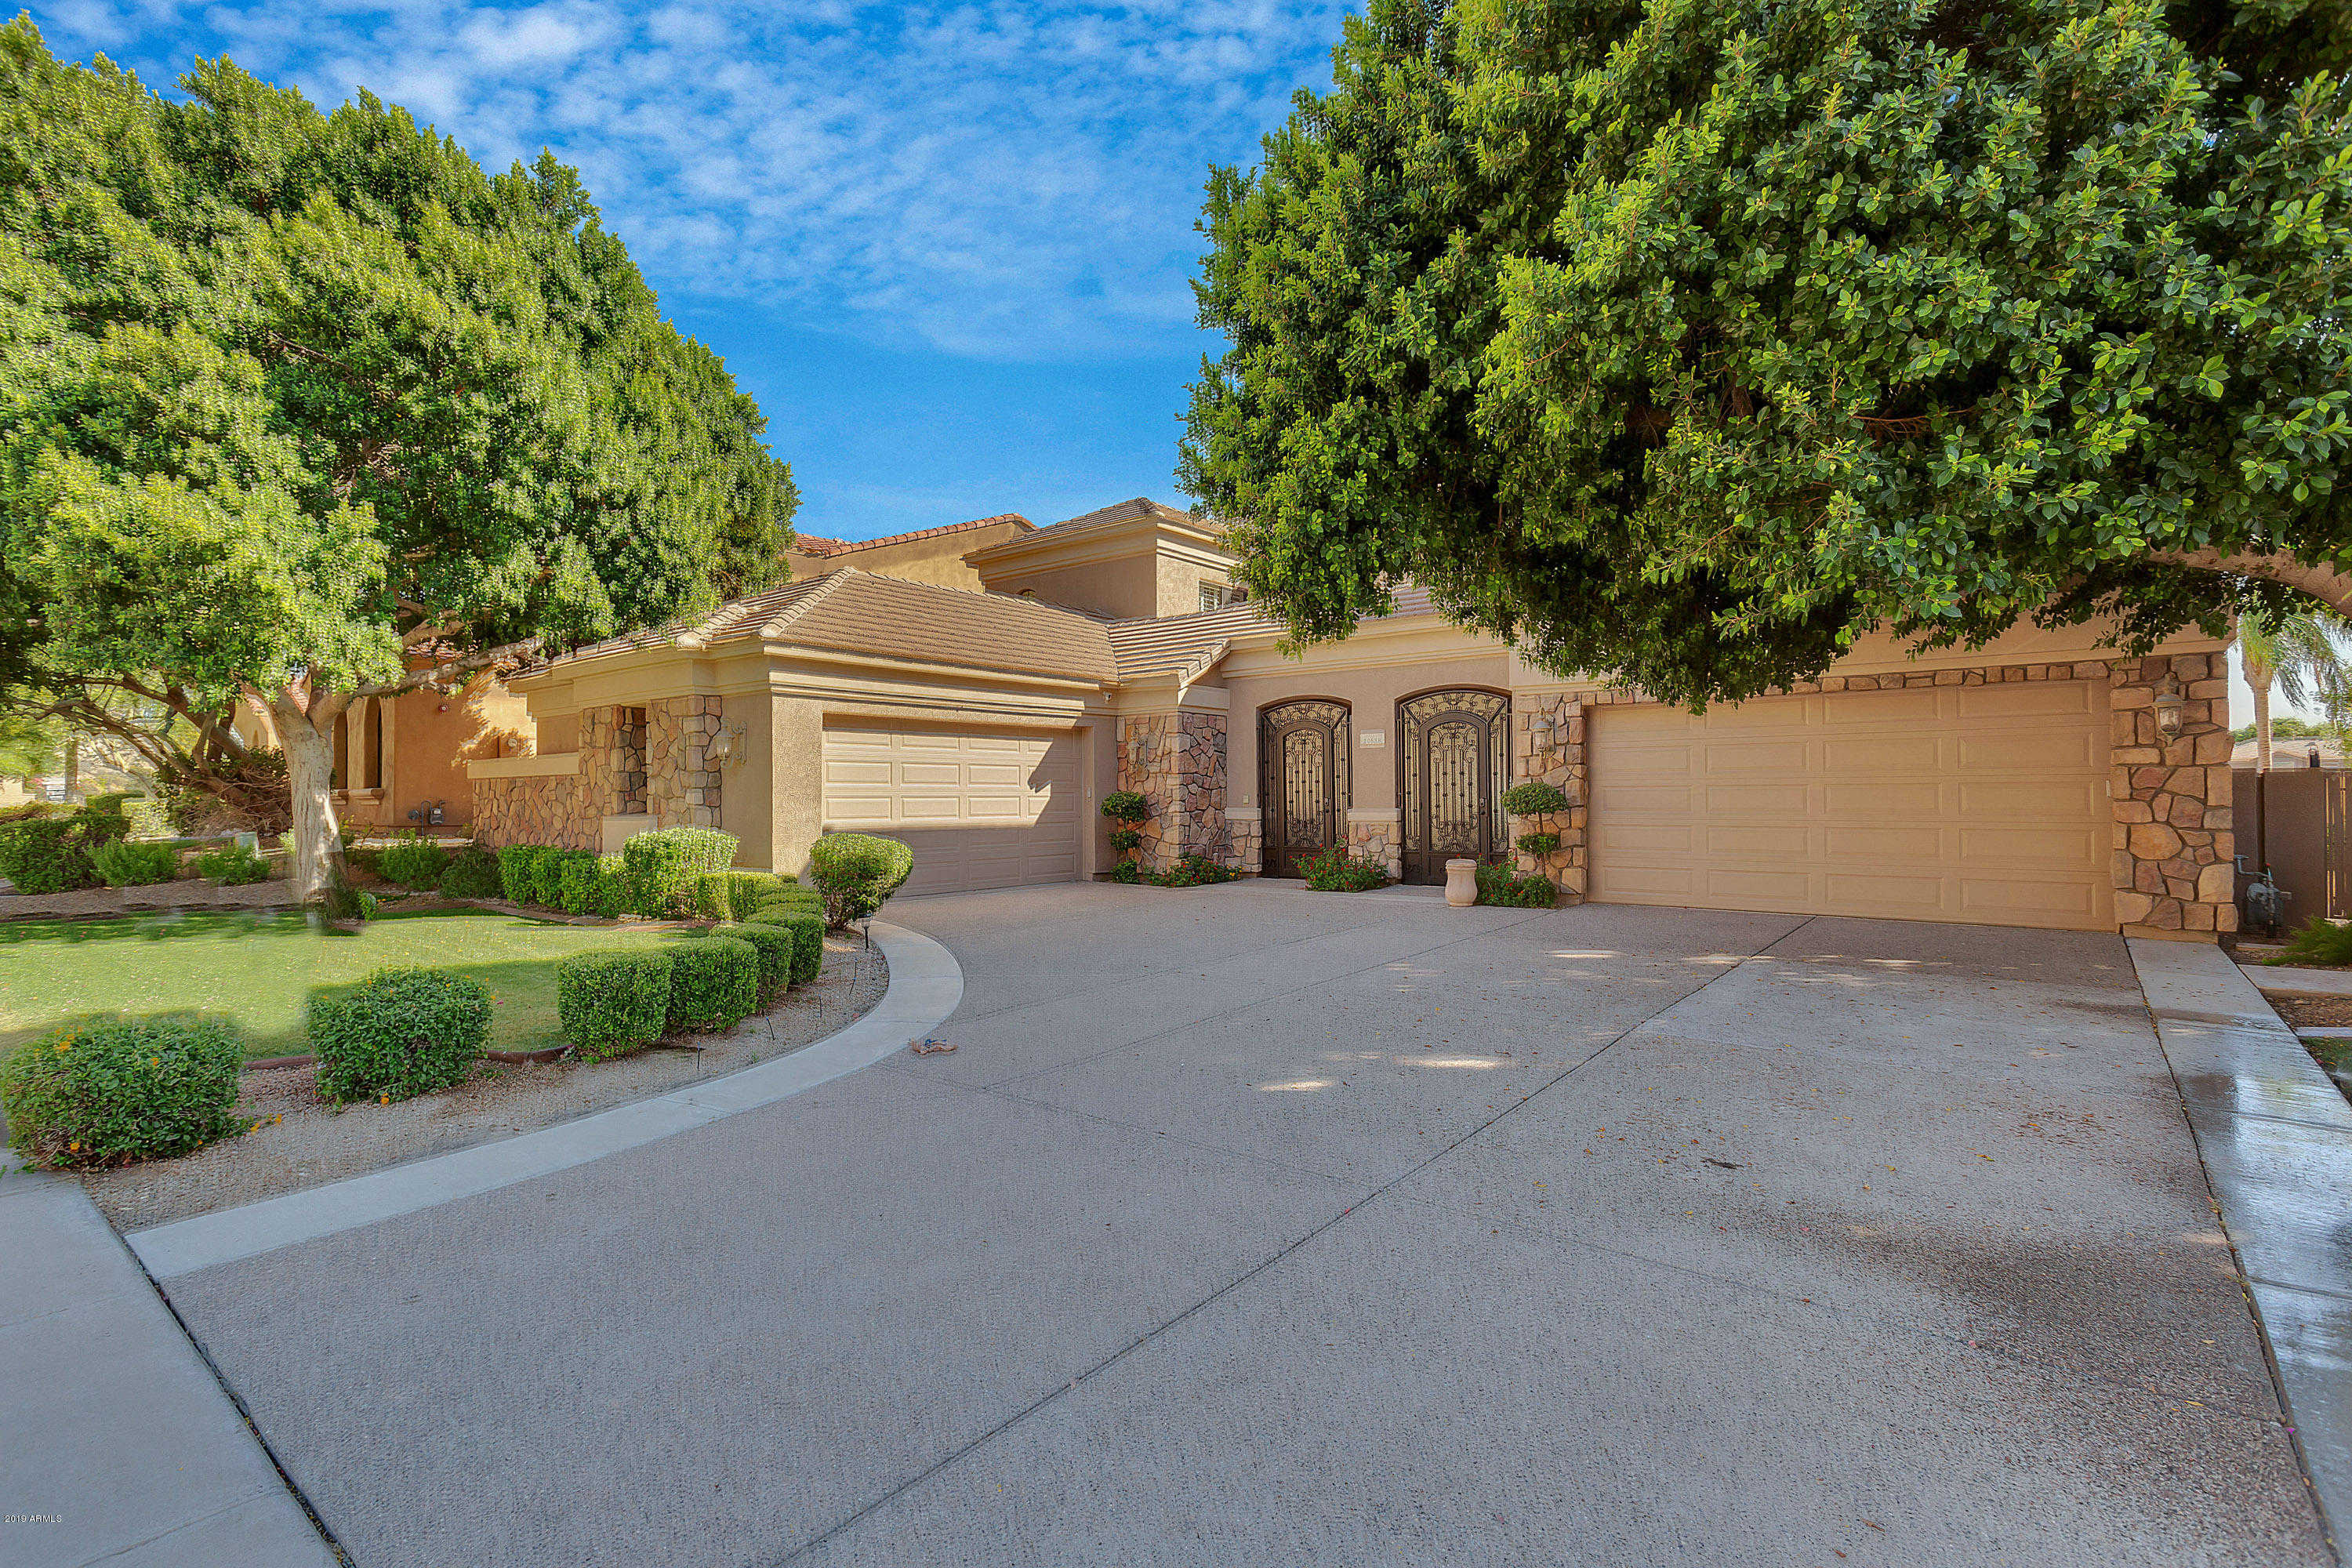 $950,000 - 5Br/4Ba - Home for Sale in Estates At Arrowhead Phase One B, Glendale